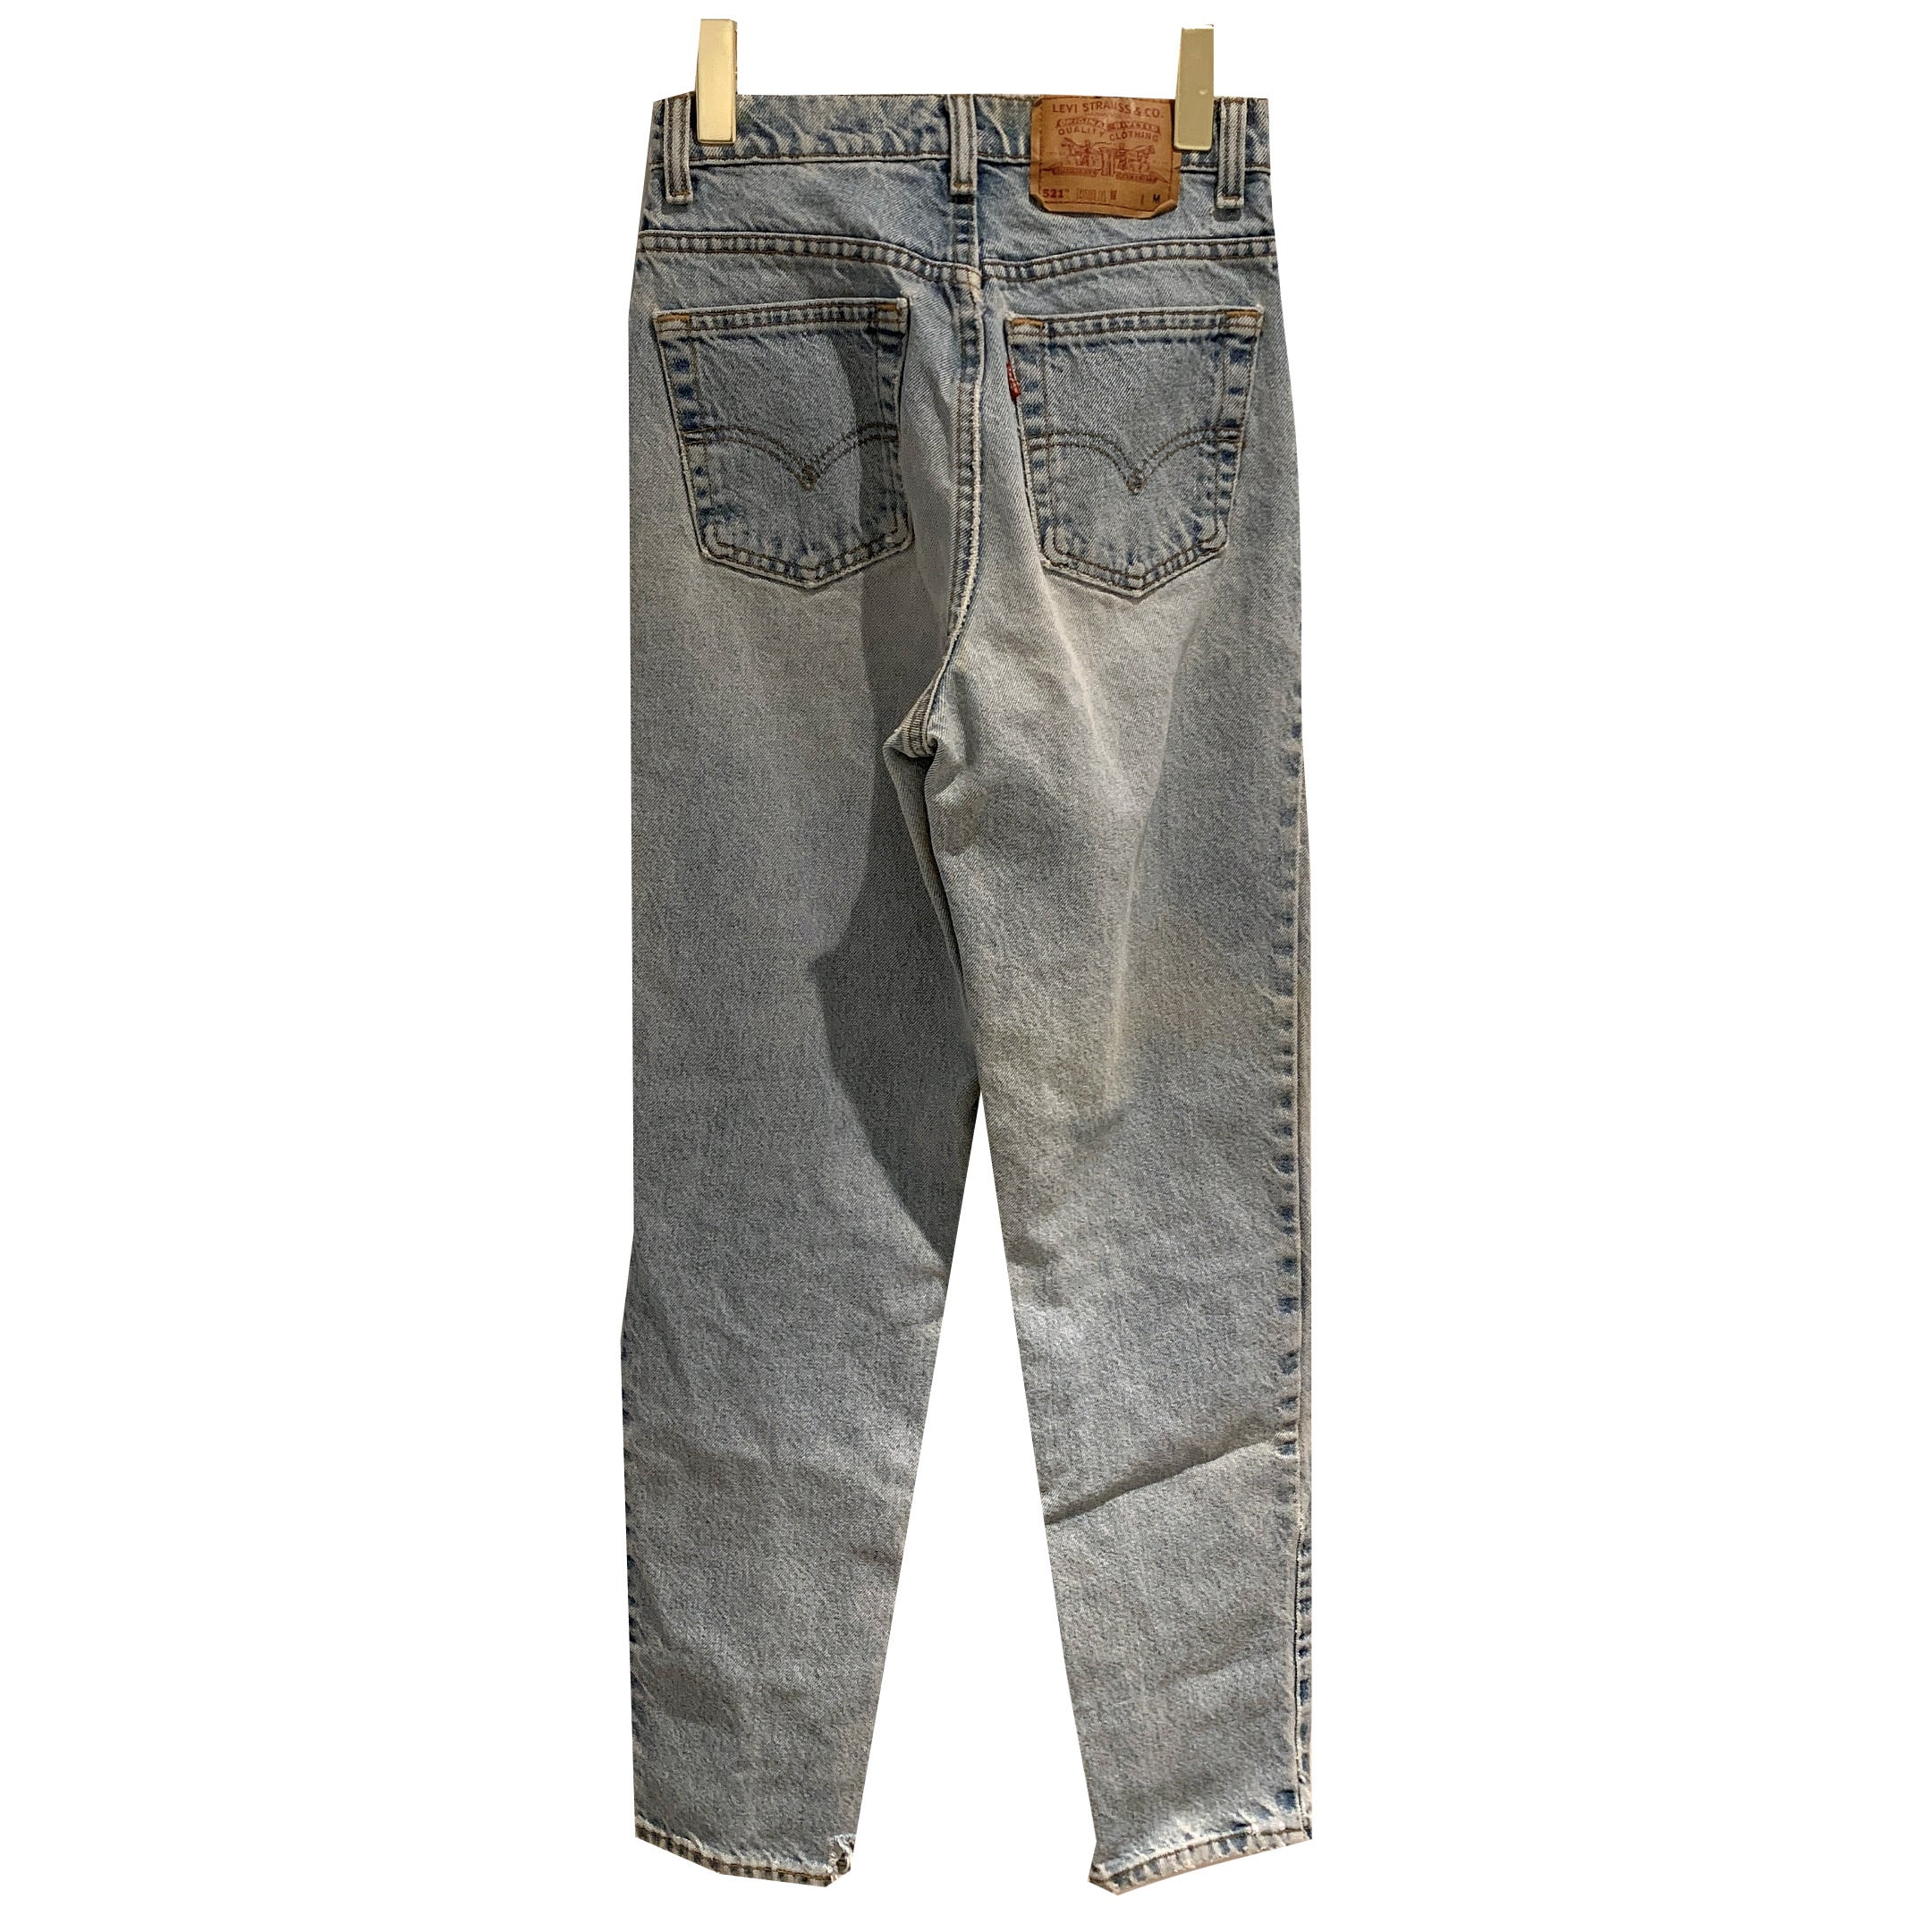 Levi's light wash tapered fit